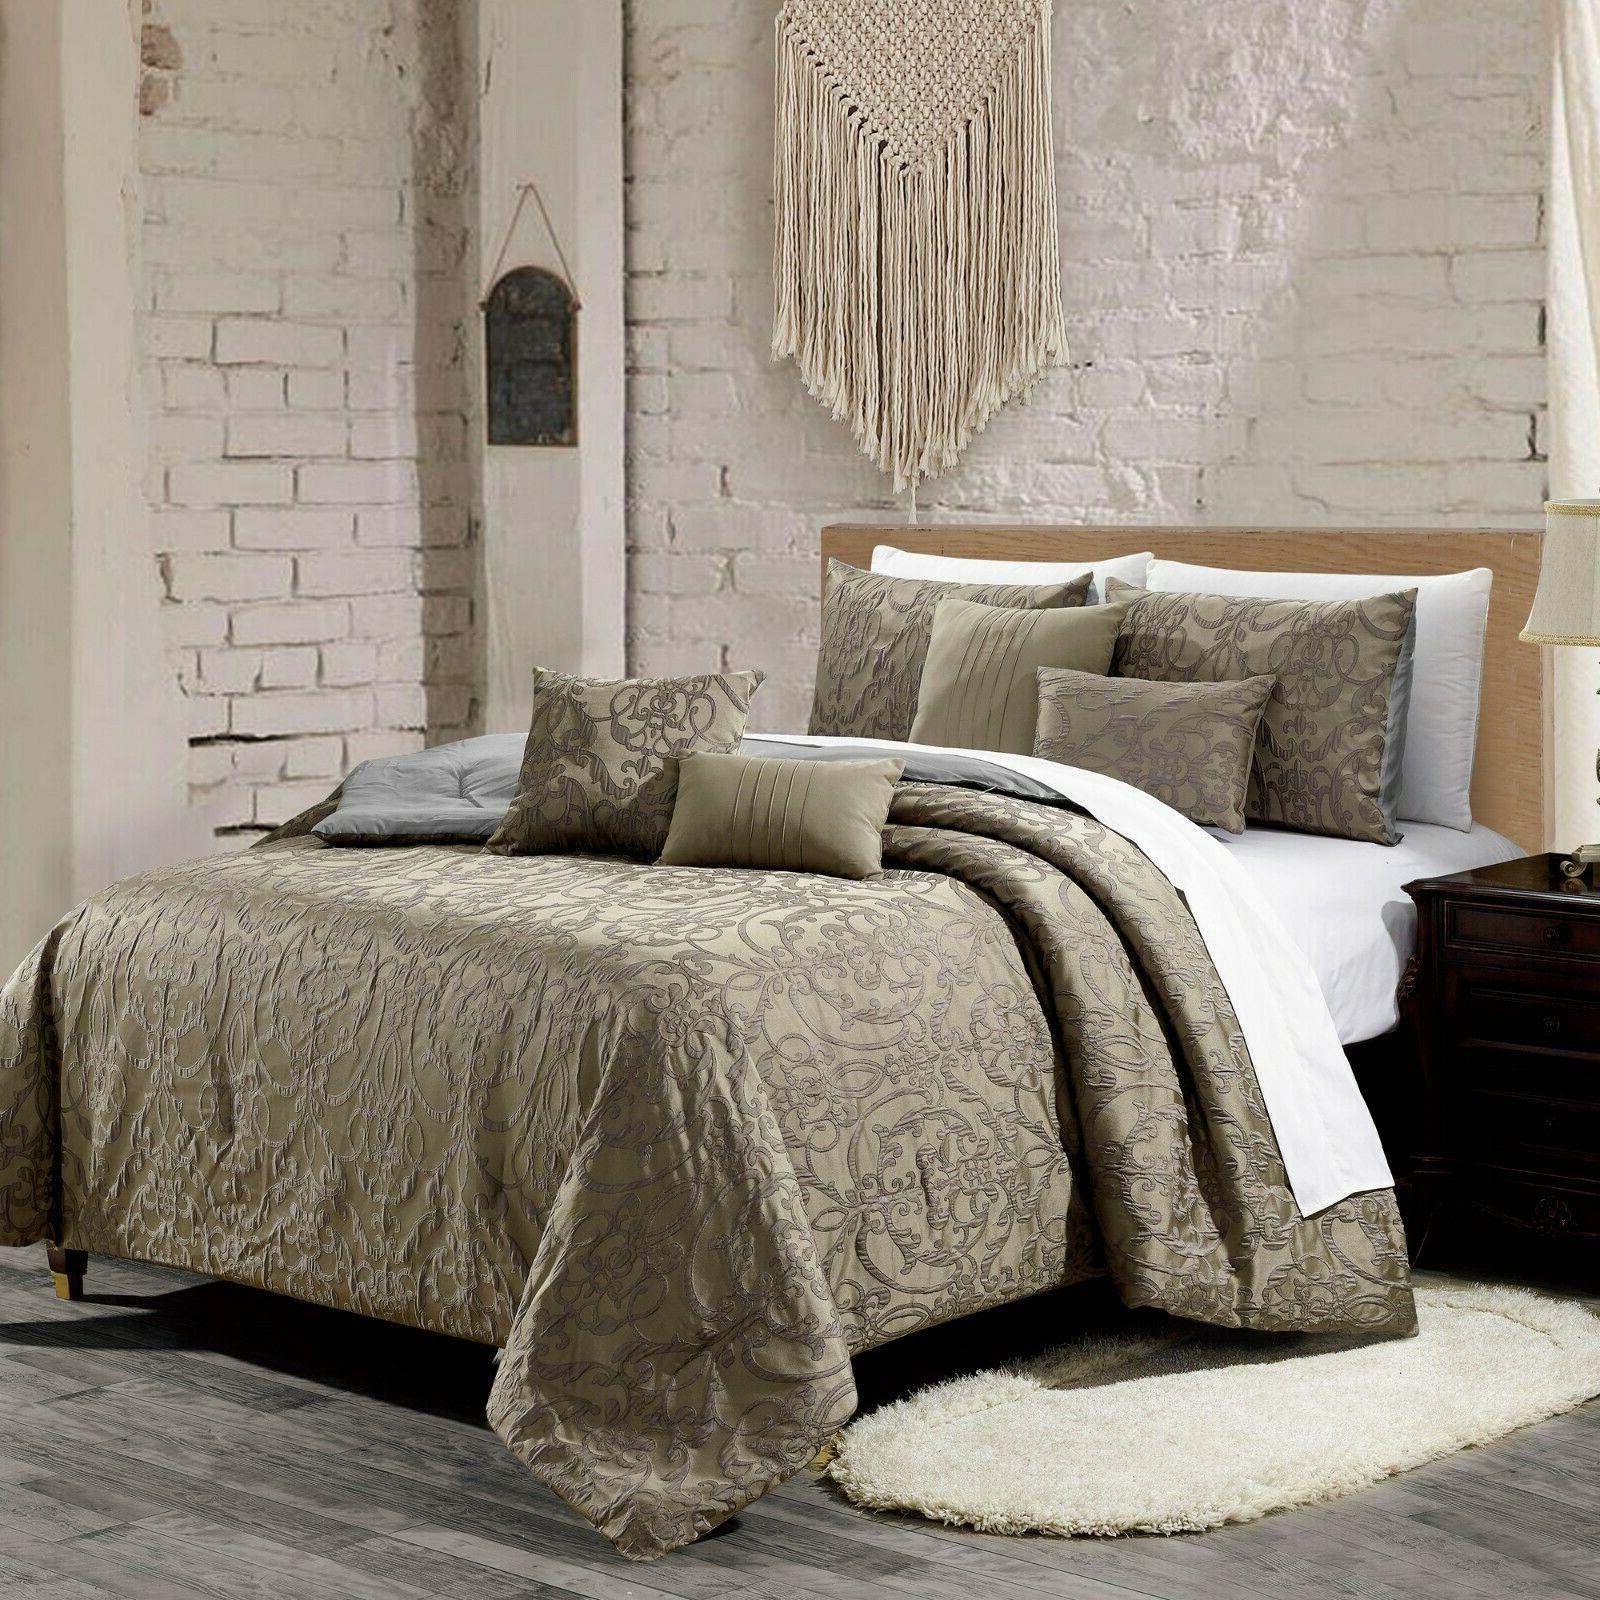 7 Comforter - Bed in Cal King